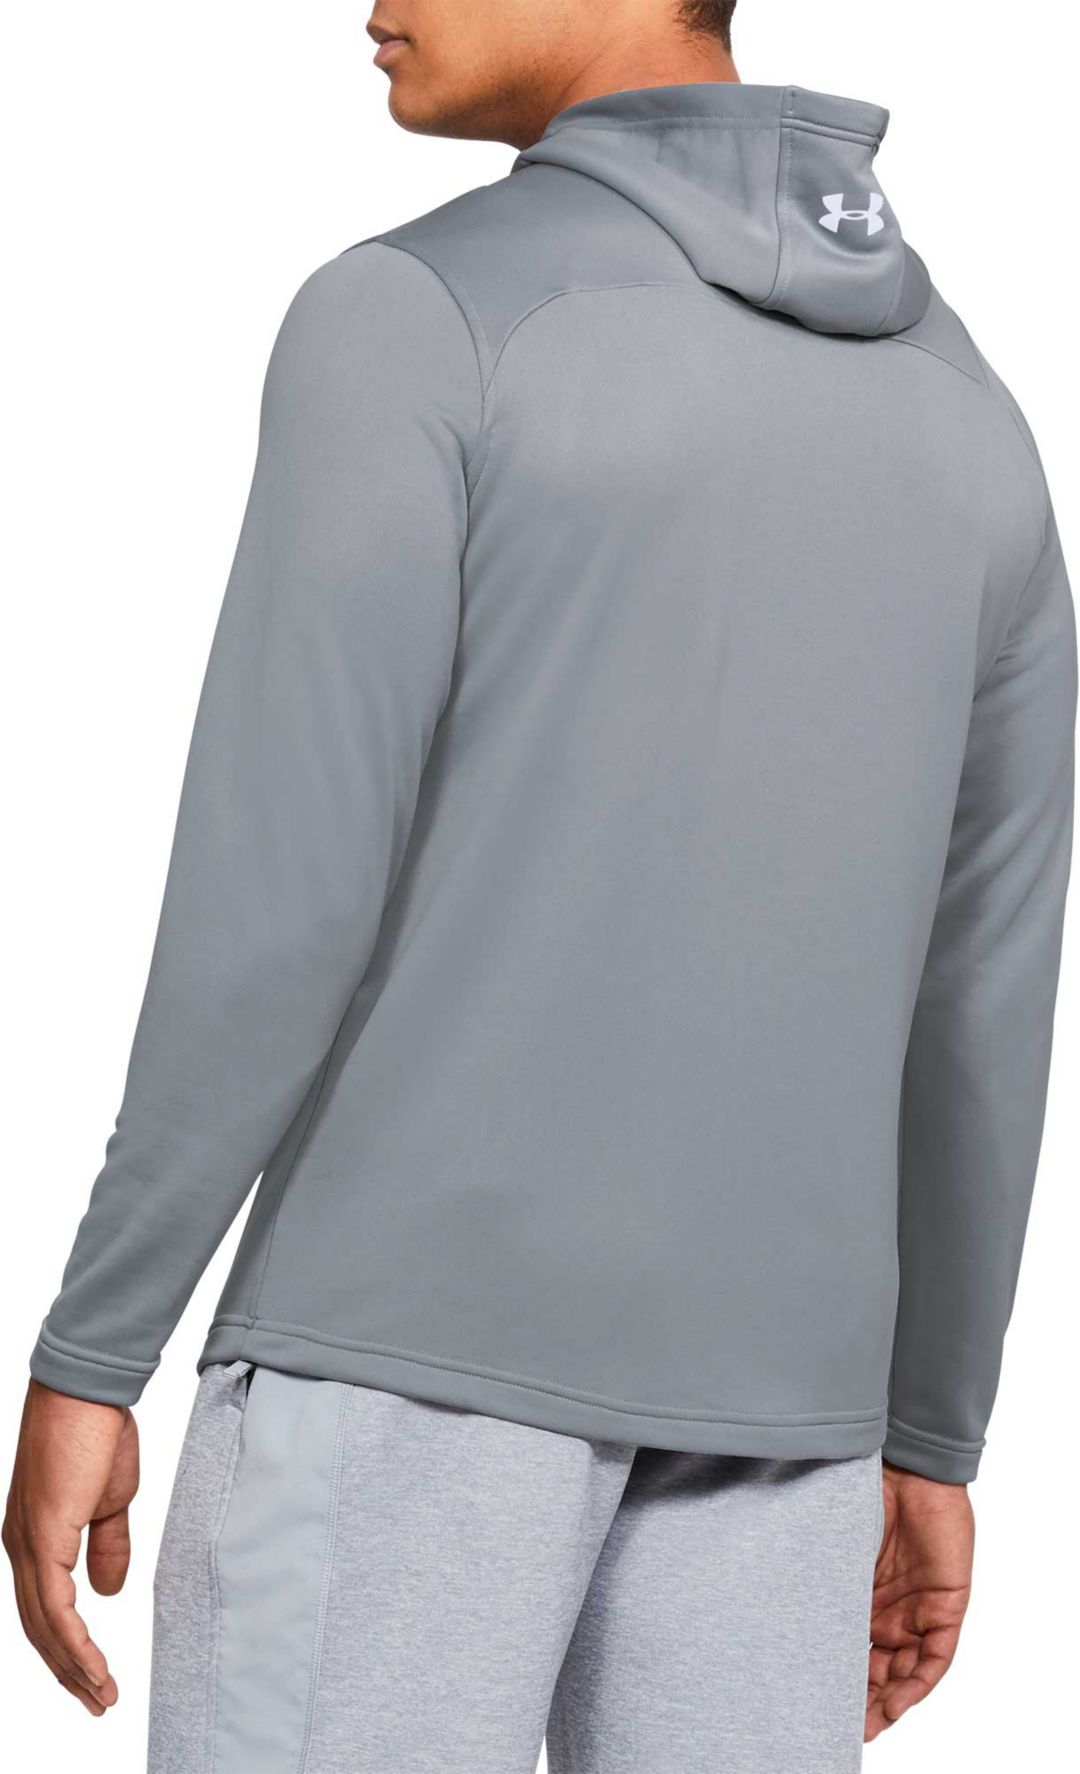 d4b63c47 Under Armour Men's Freedom BFL Tech Terry Hoodie | DICK'S Sporting Goods